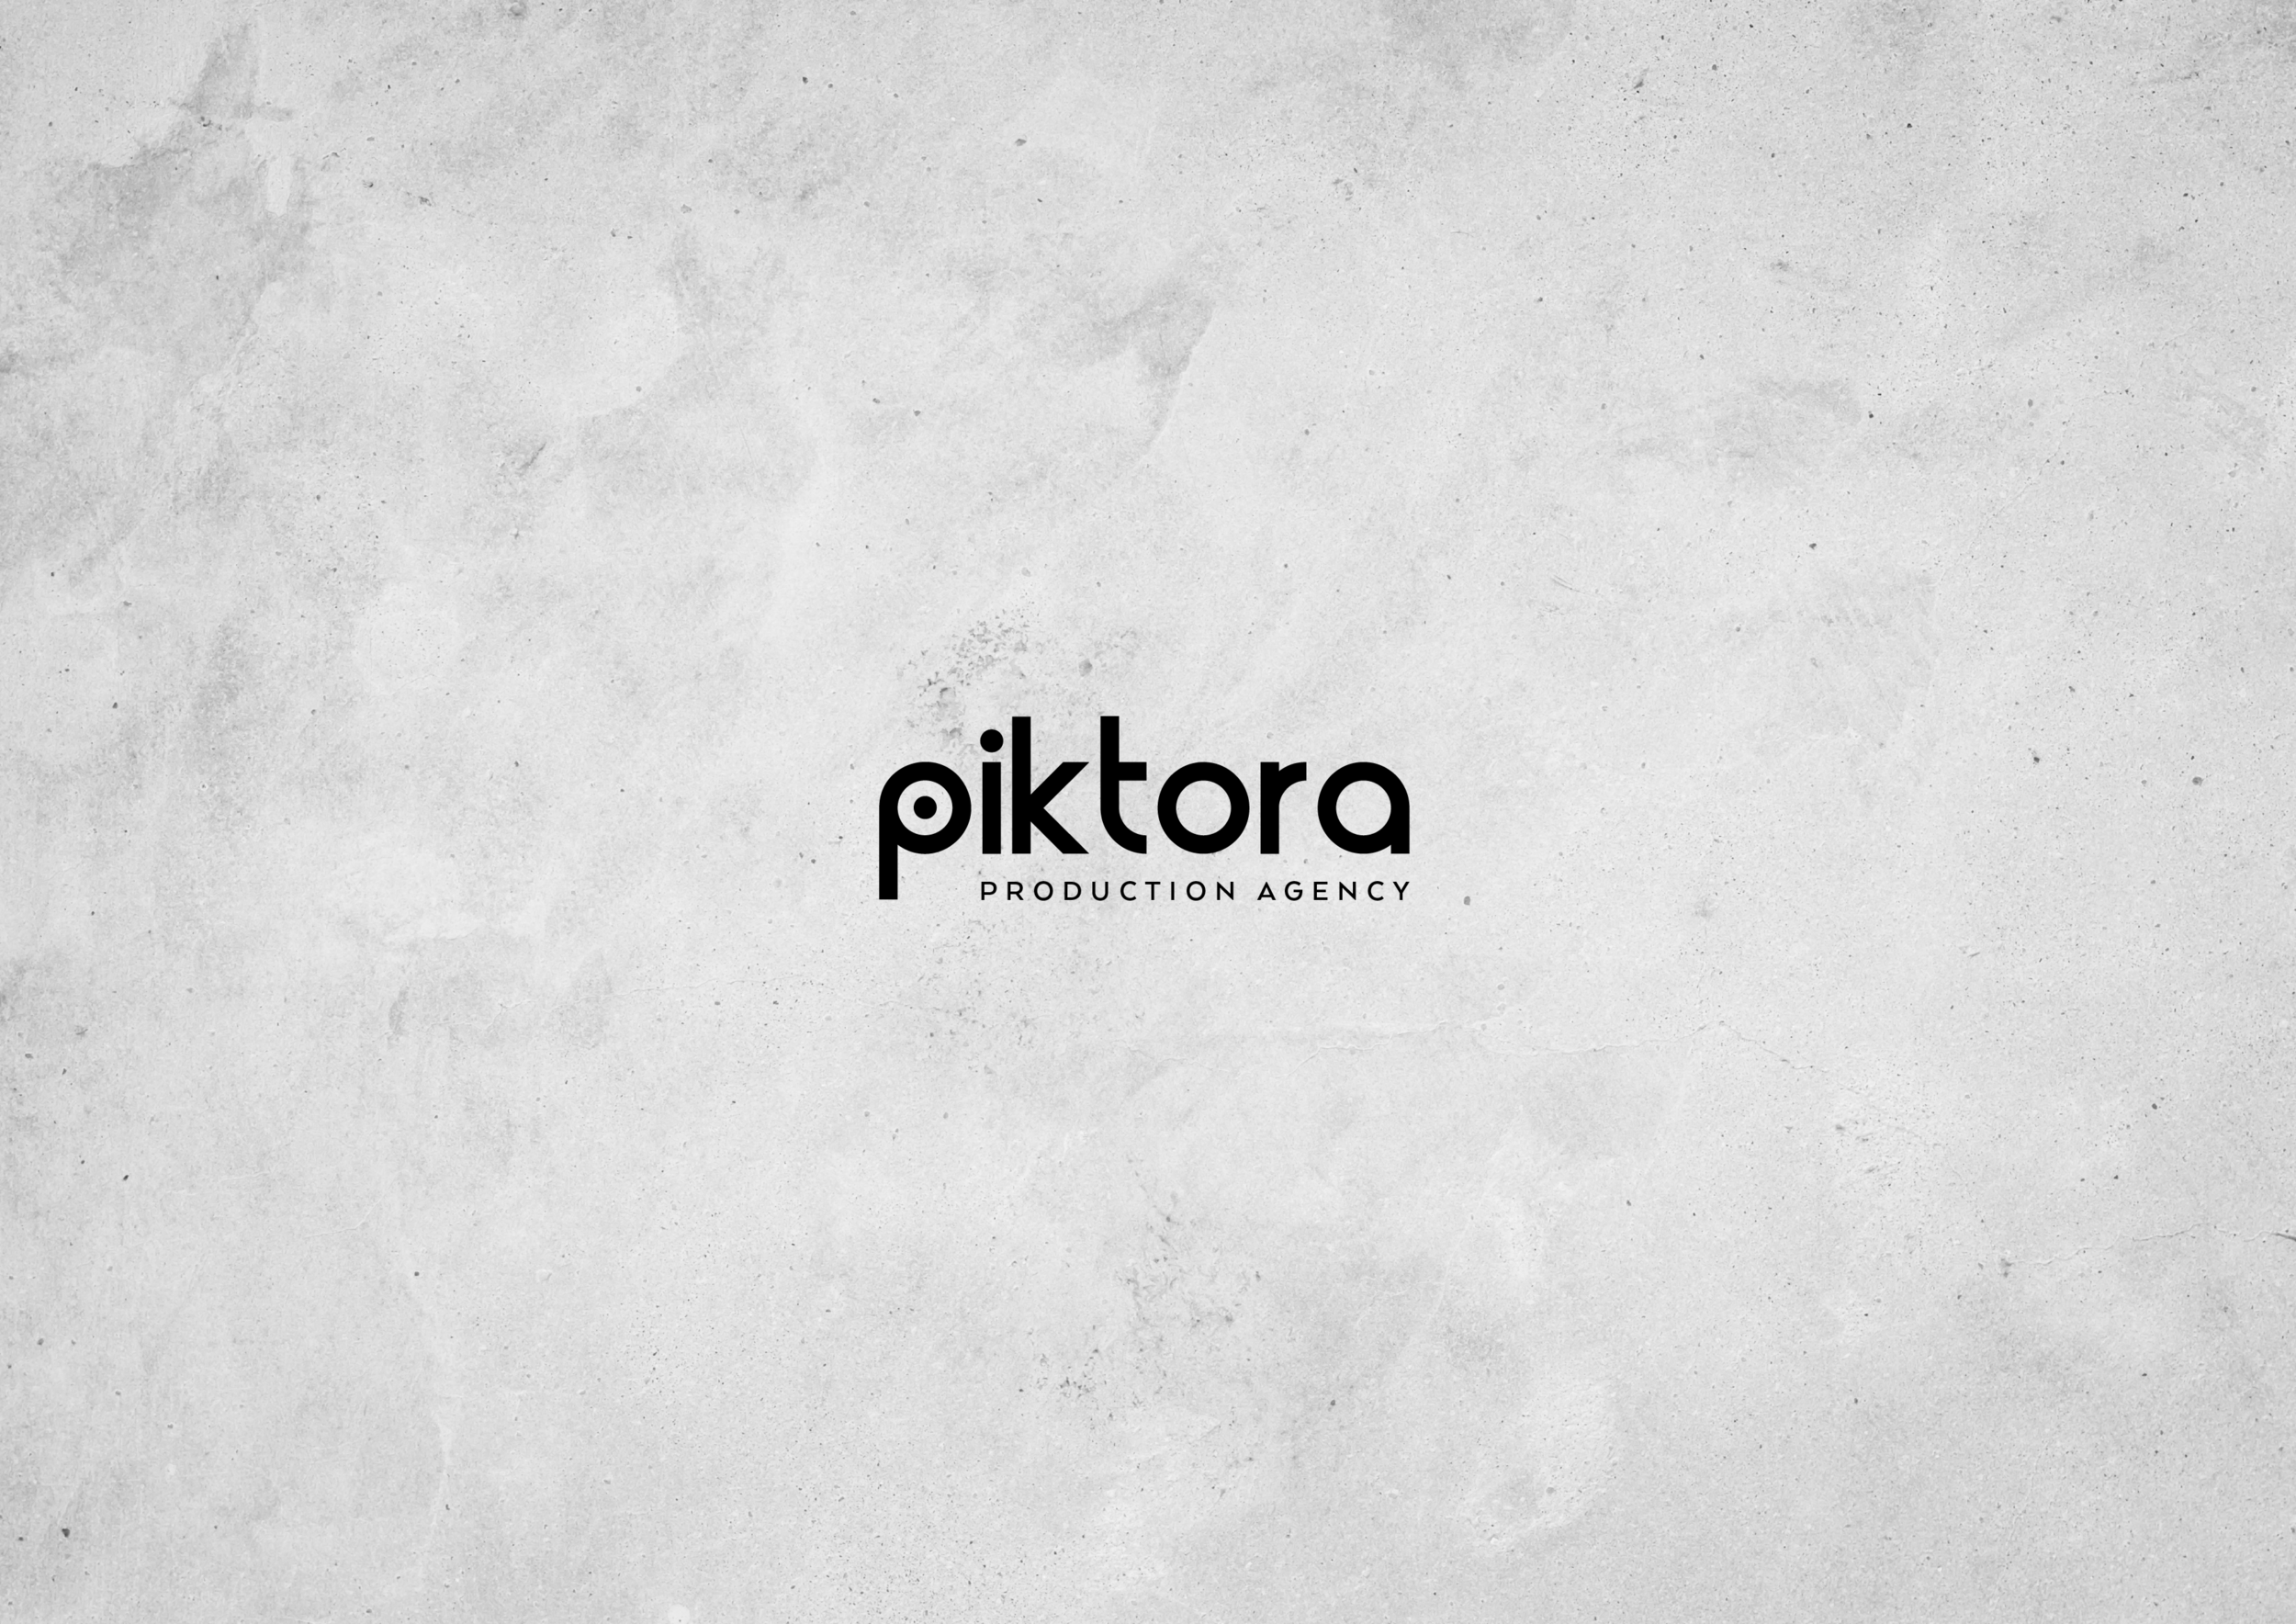 Branding Project for Piktora Production Agency / World Brand Design Society